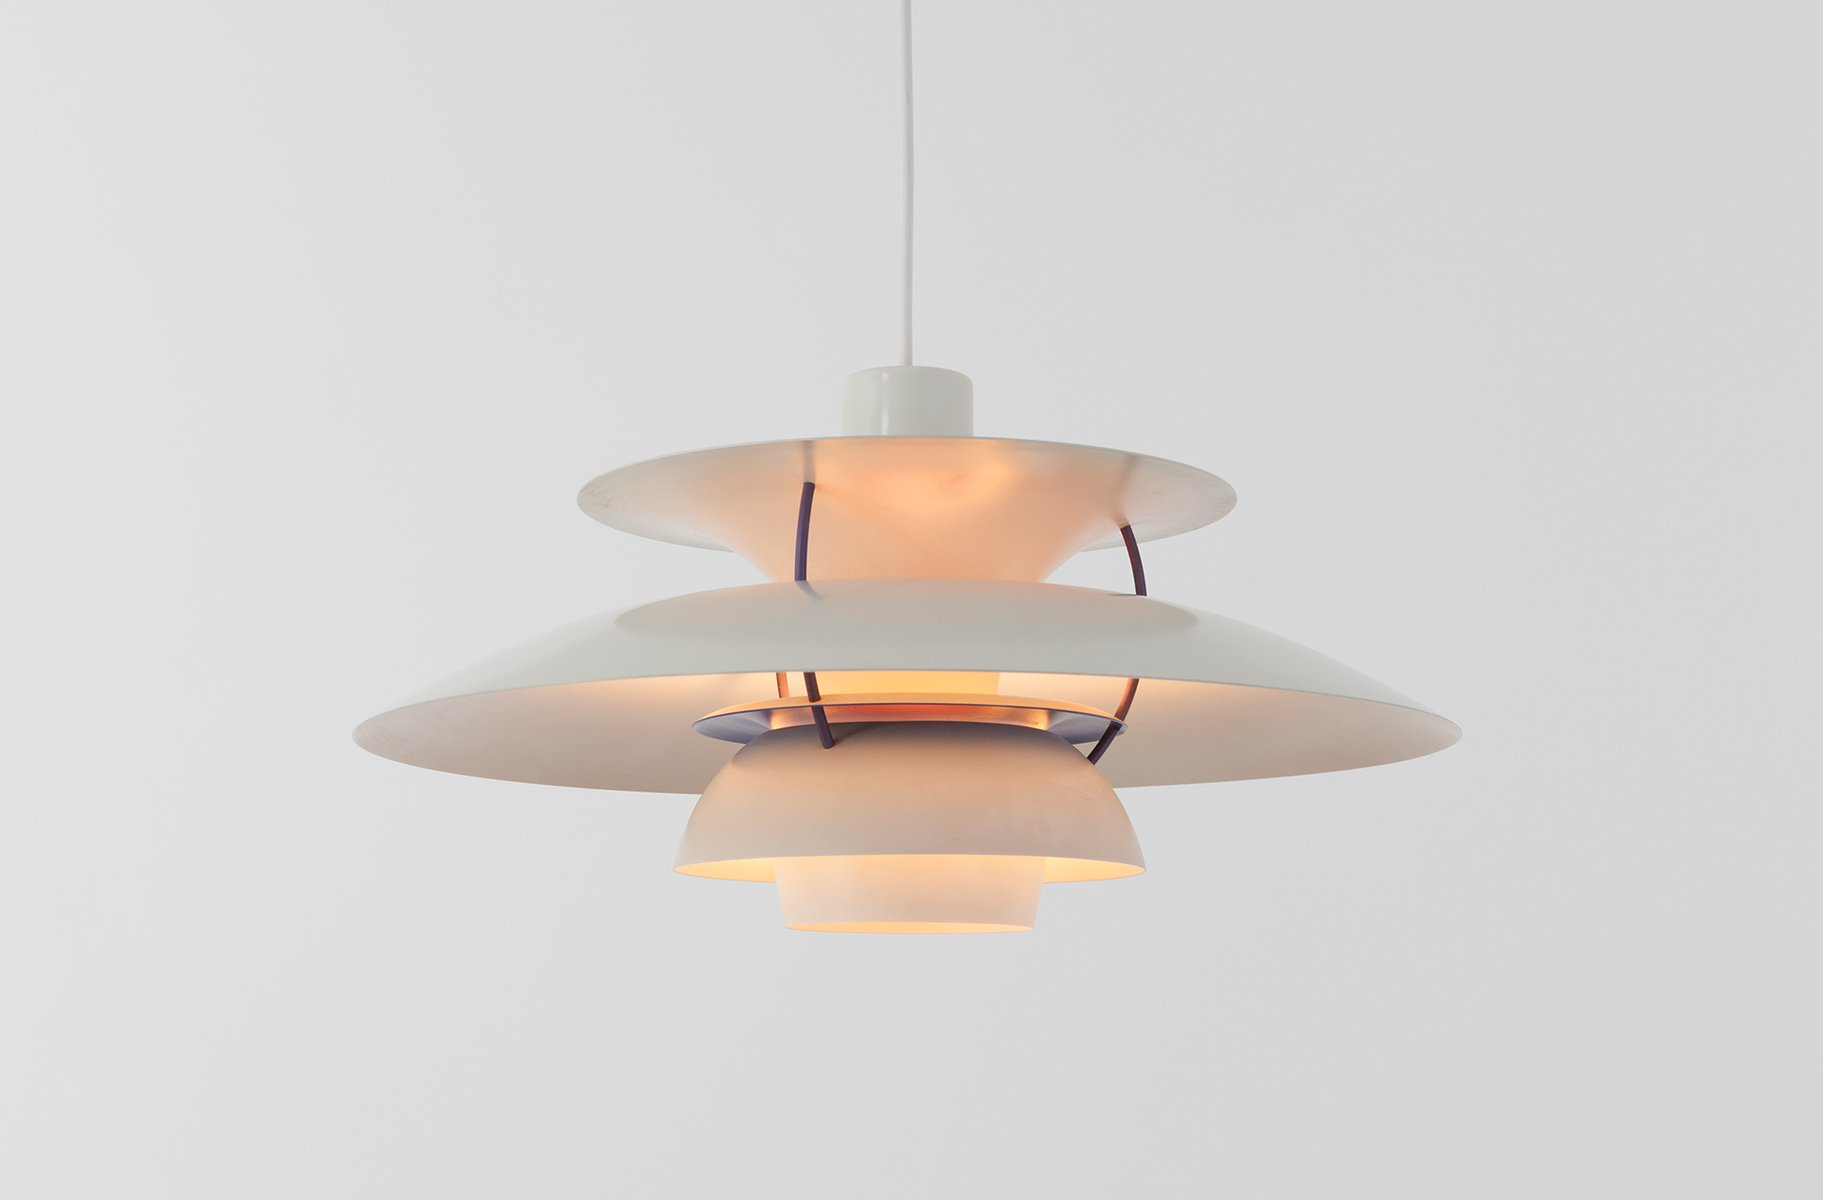 Vintage Ph 5 Pendant Lamp By Poul Henningsen For Louis Poulsen